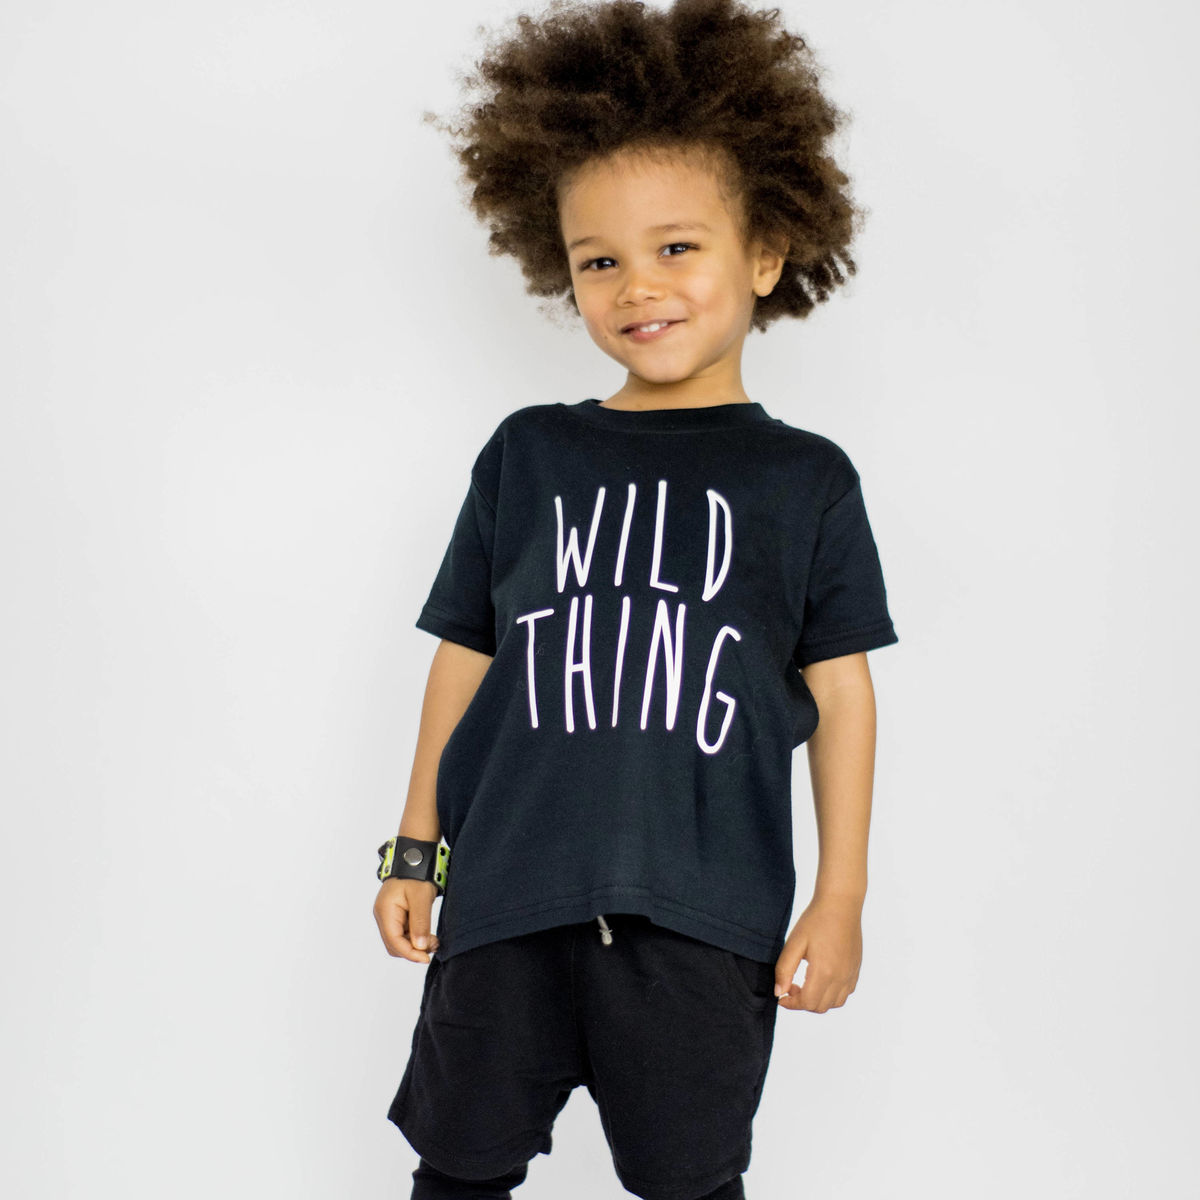 Wild Thing Kids TShirt (various sizes) - product images  of